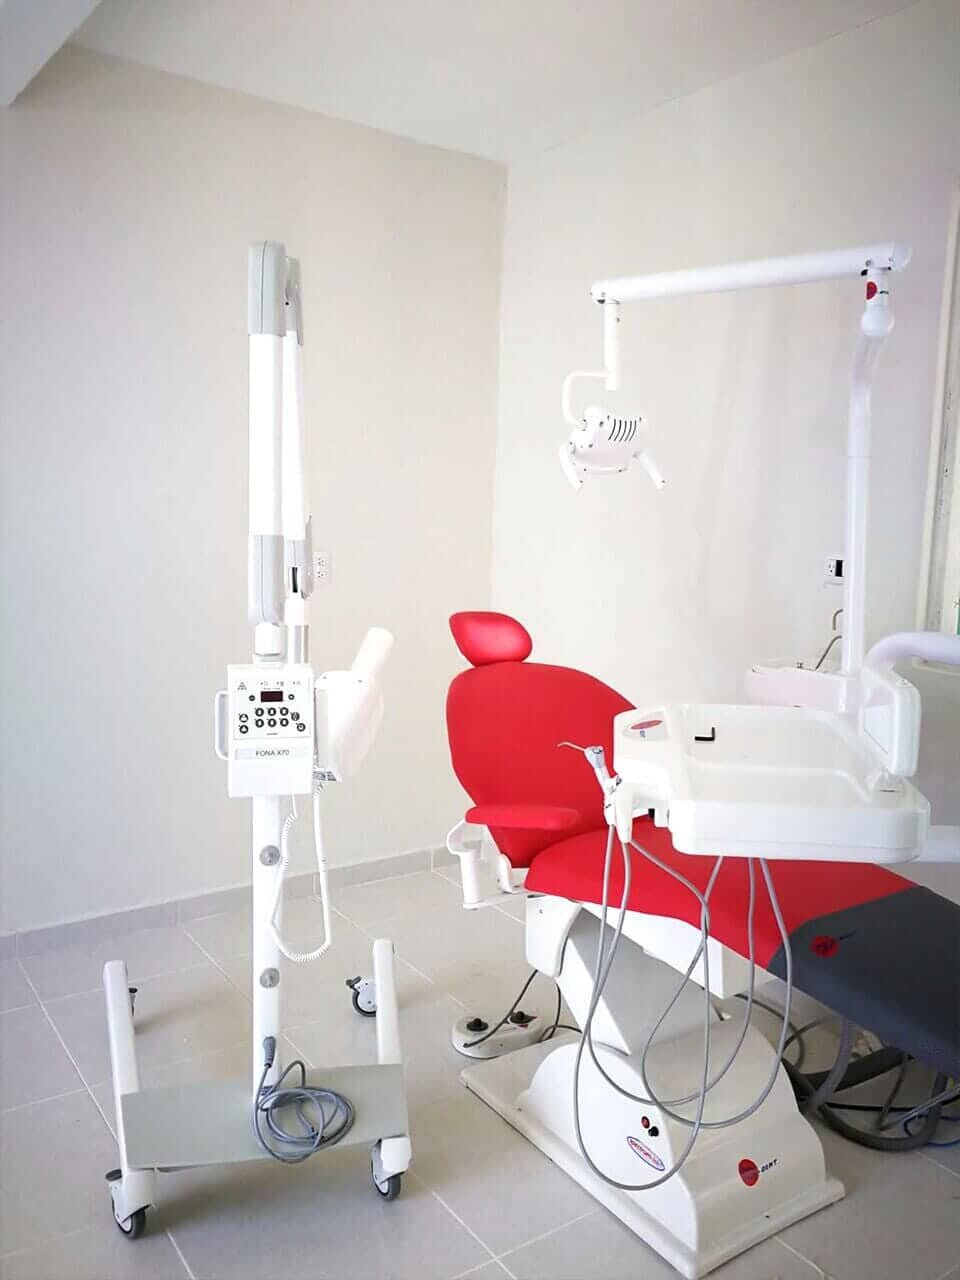 Taburetes - DENTAL PUEBLA